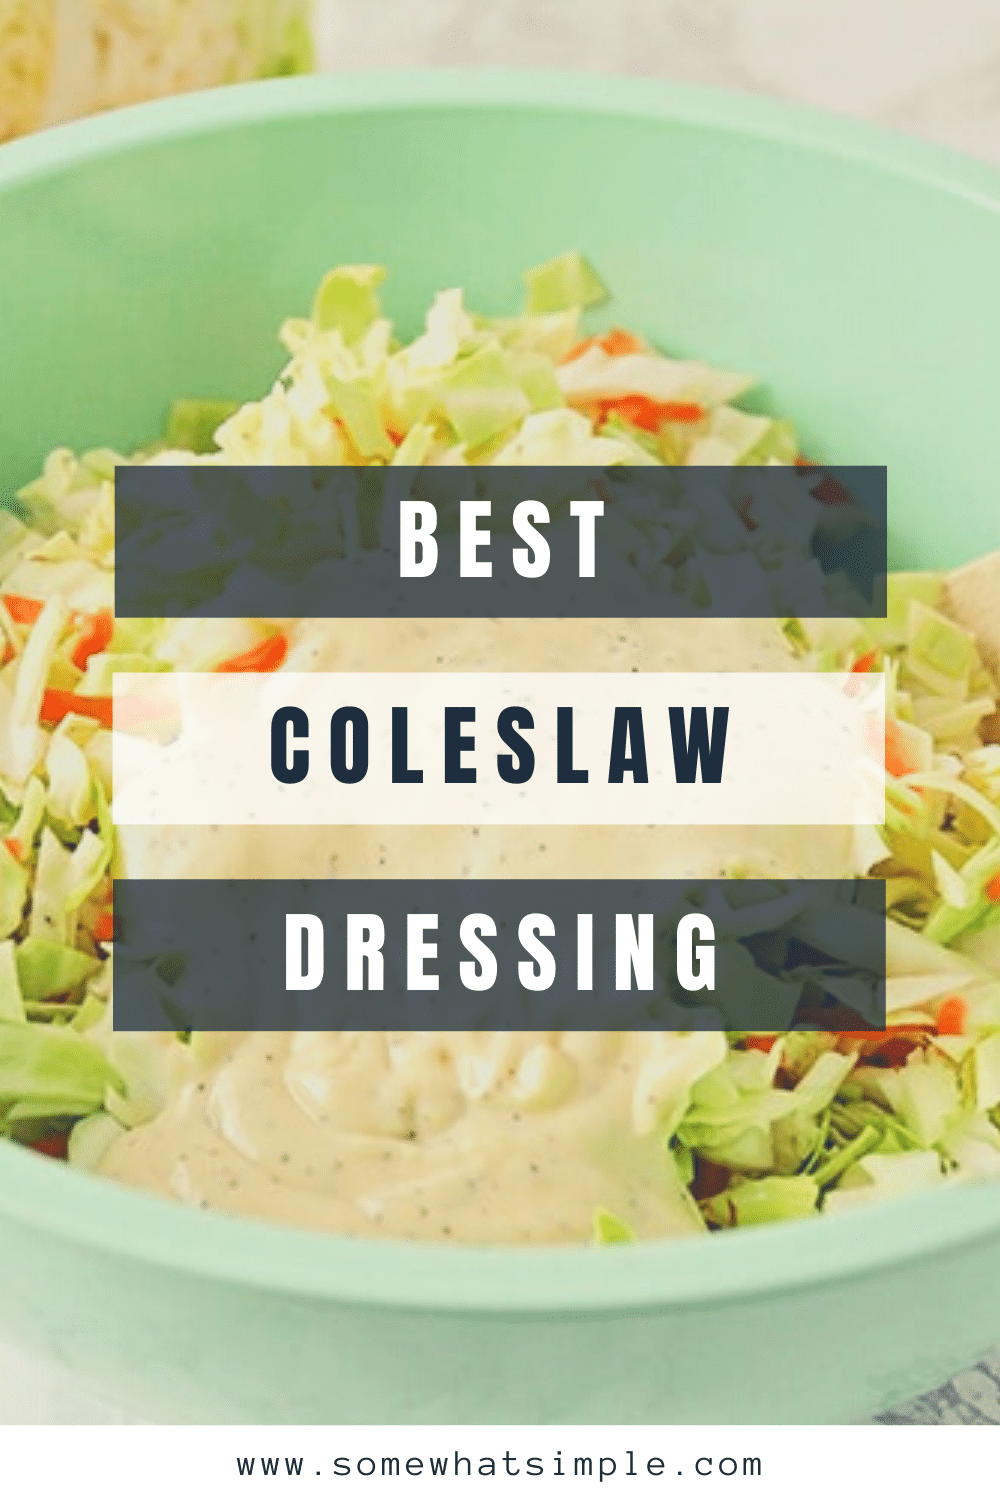 This flavorful coleslaw dressing will take your homemade coleslaw to the next level! Made with just a few easy ingredients, it's easy to put together and it tastes AMAZING! The best part is that this recipe only takes 3 minutes to make and will taste better than anything you've ever tried. via @somewhatsimple